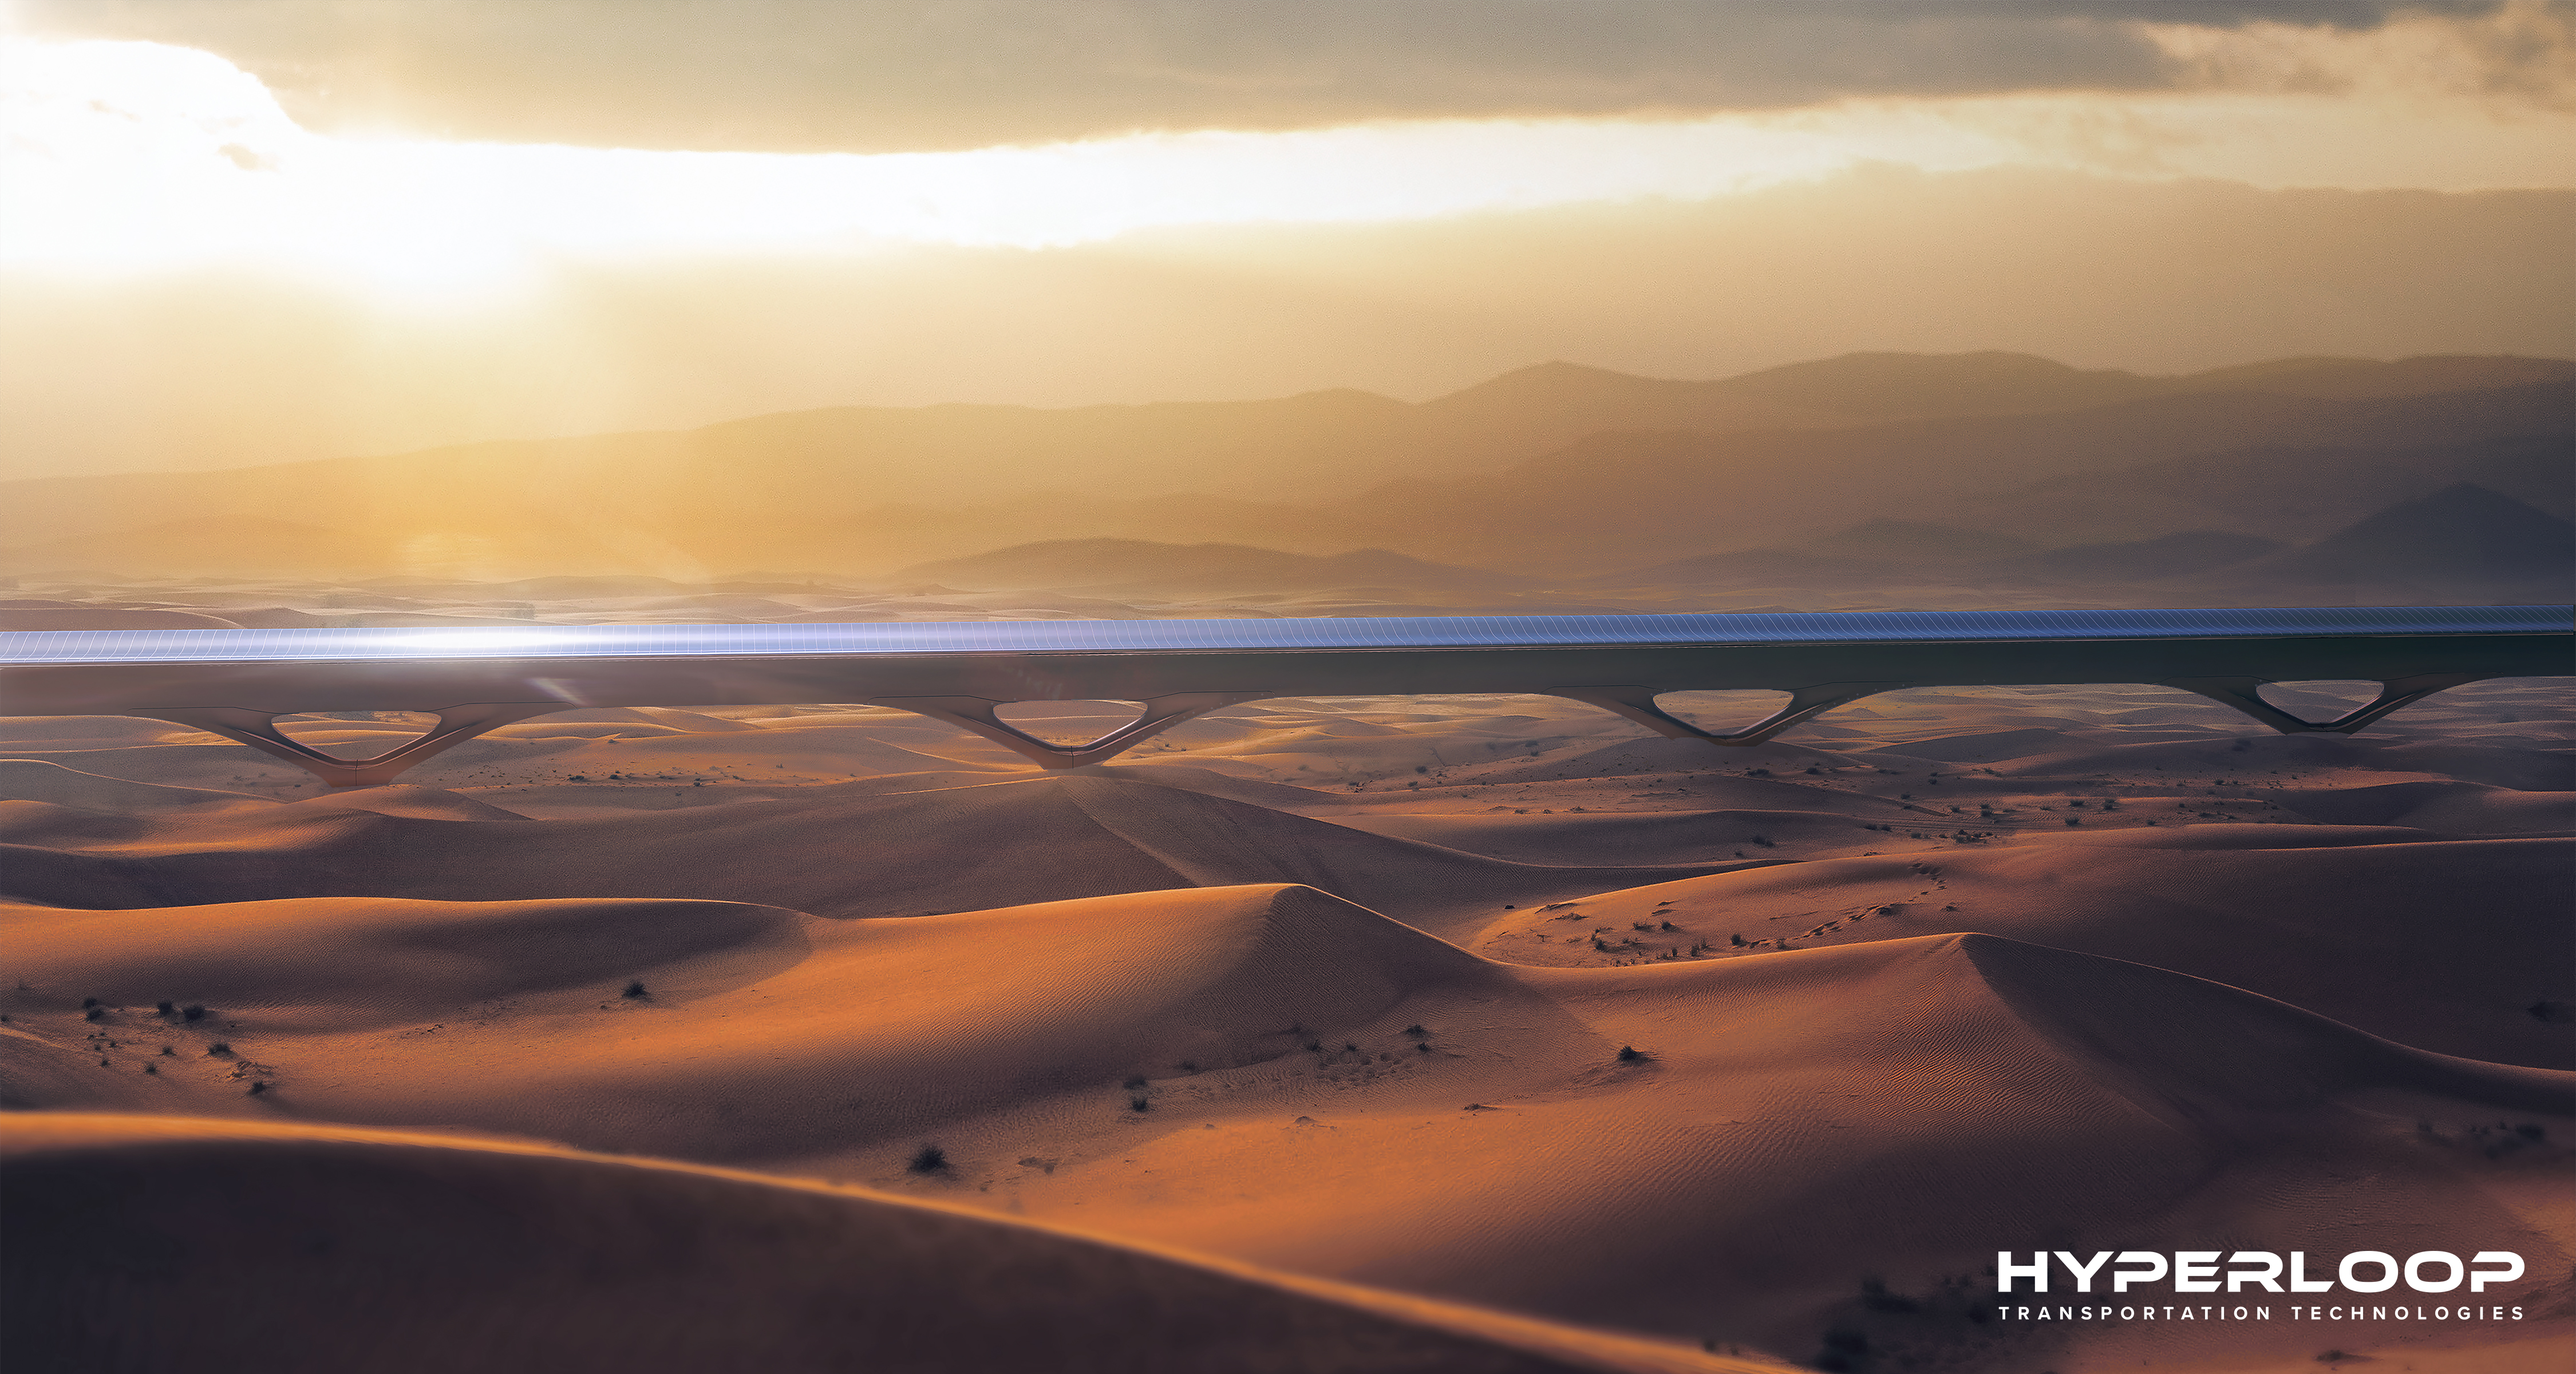 Hyperloop TT to Initiate Commercial Operations by 2023